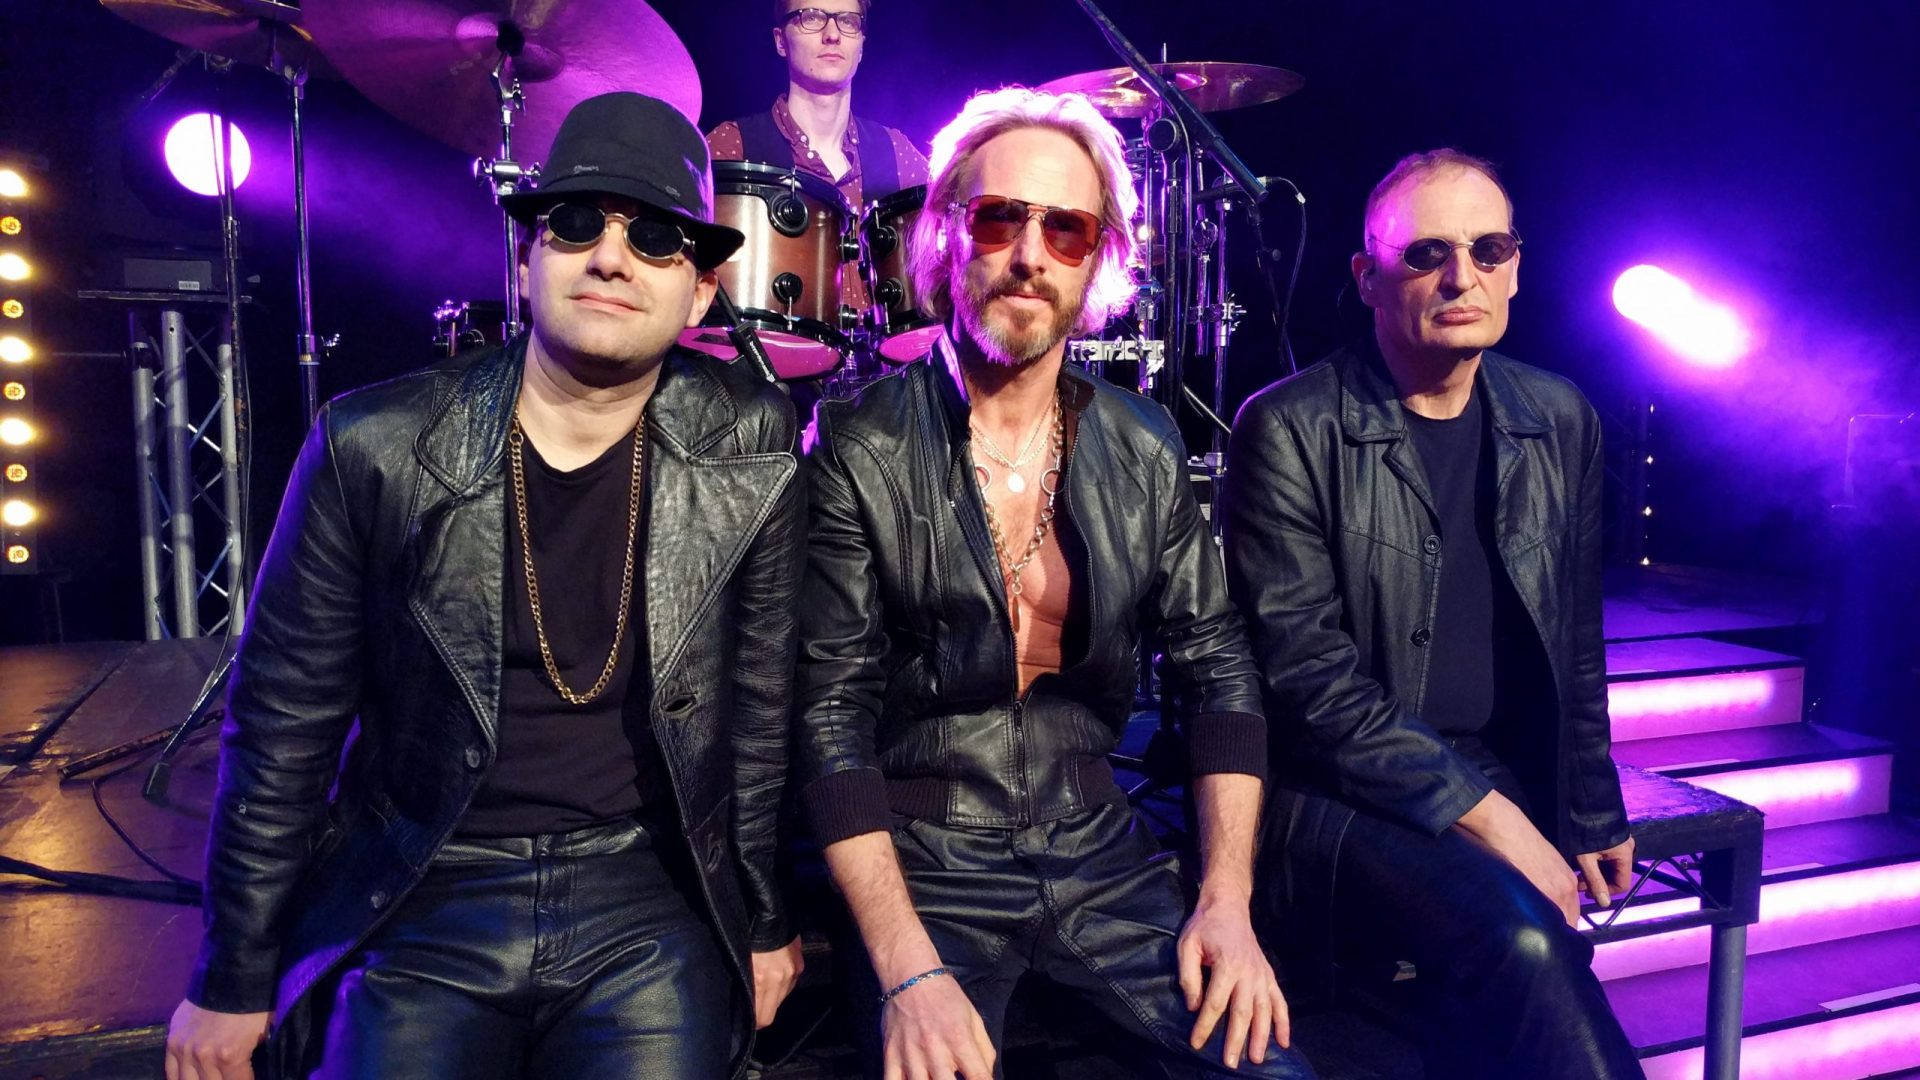 You Win Again – Celebrating the music of the Bee Gees